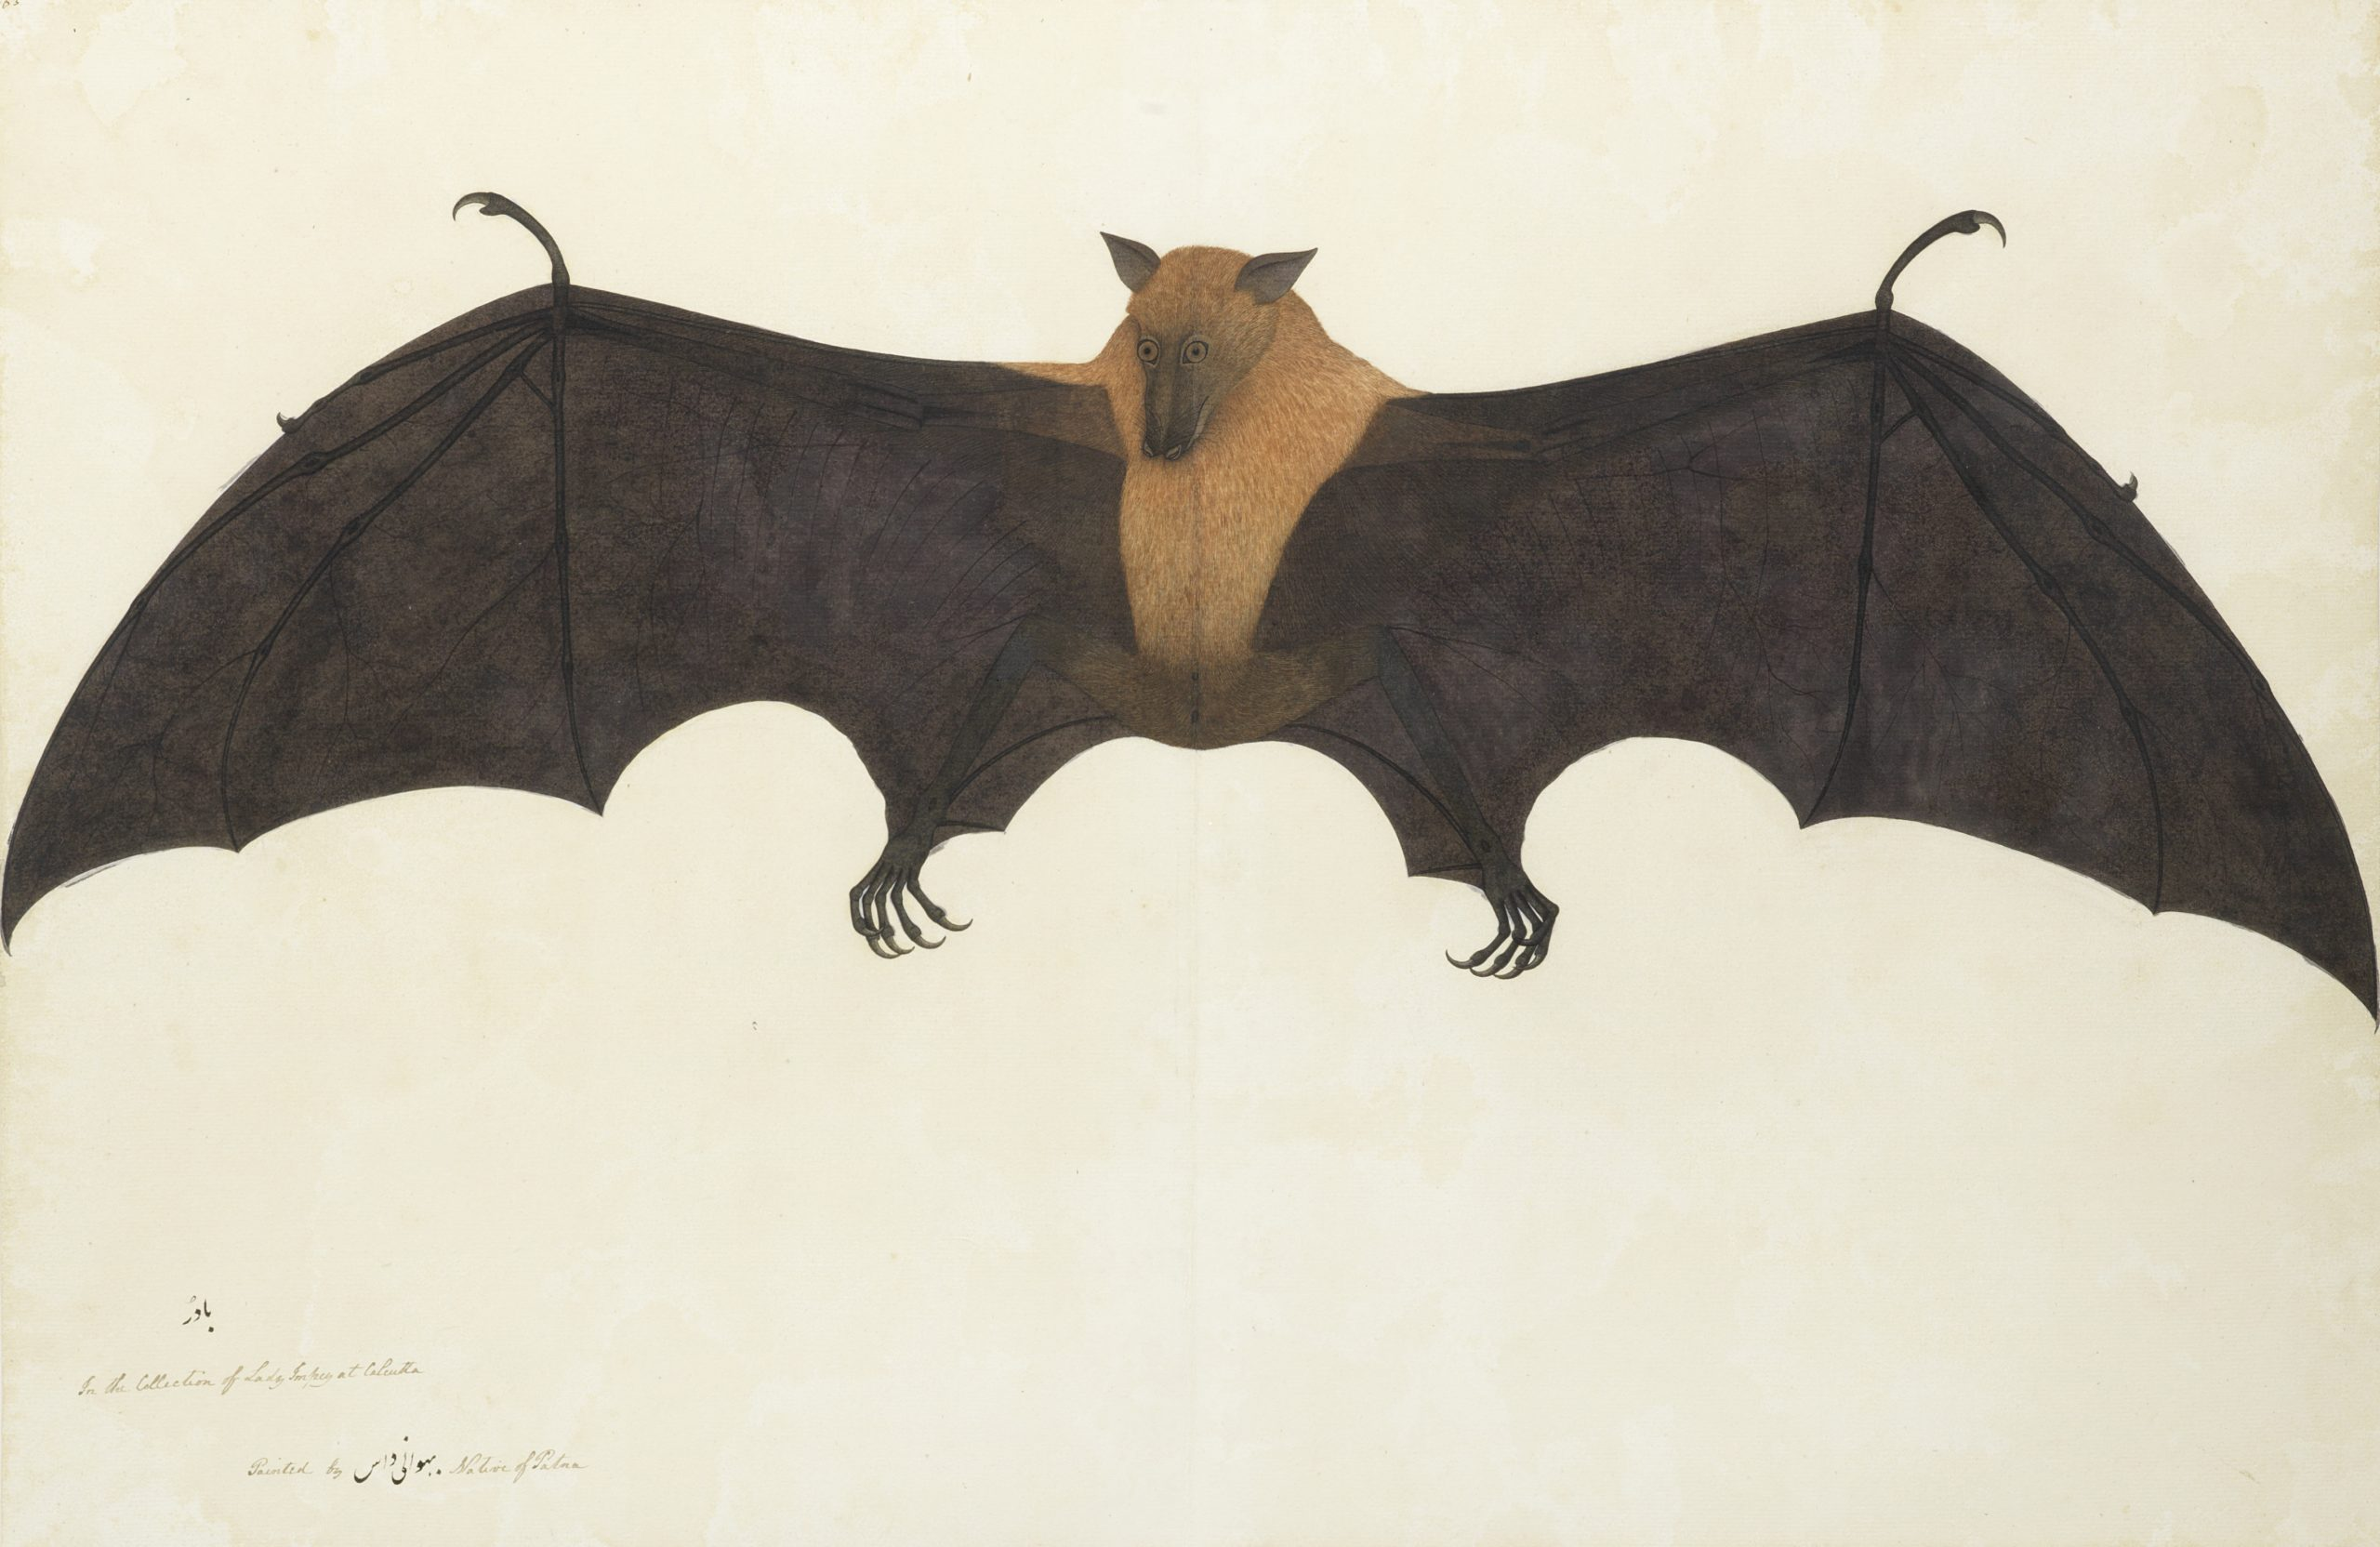 A Great Indian Fruit Bat or Flying Fox (pteropus giganteus) by Bhawani Das. Courtesy: The Wallace Collection